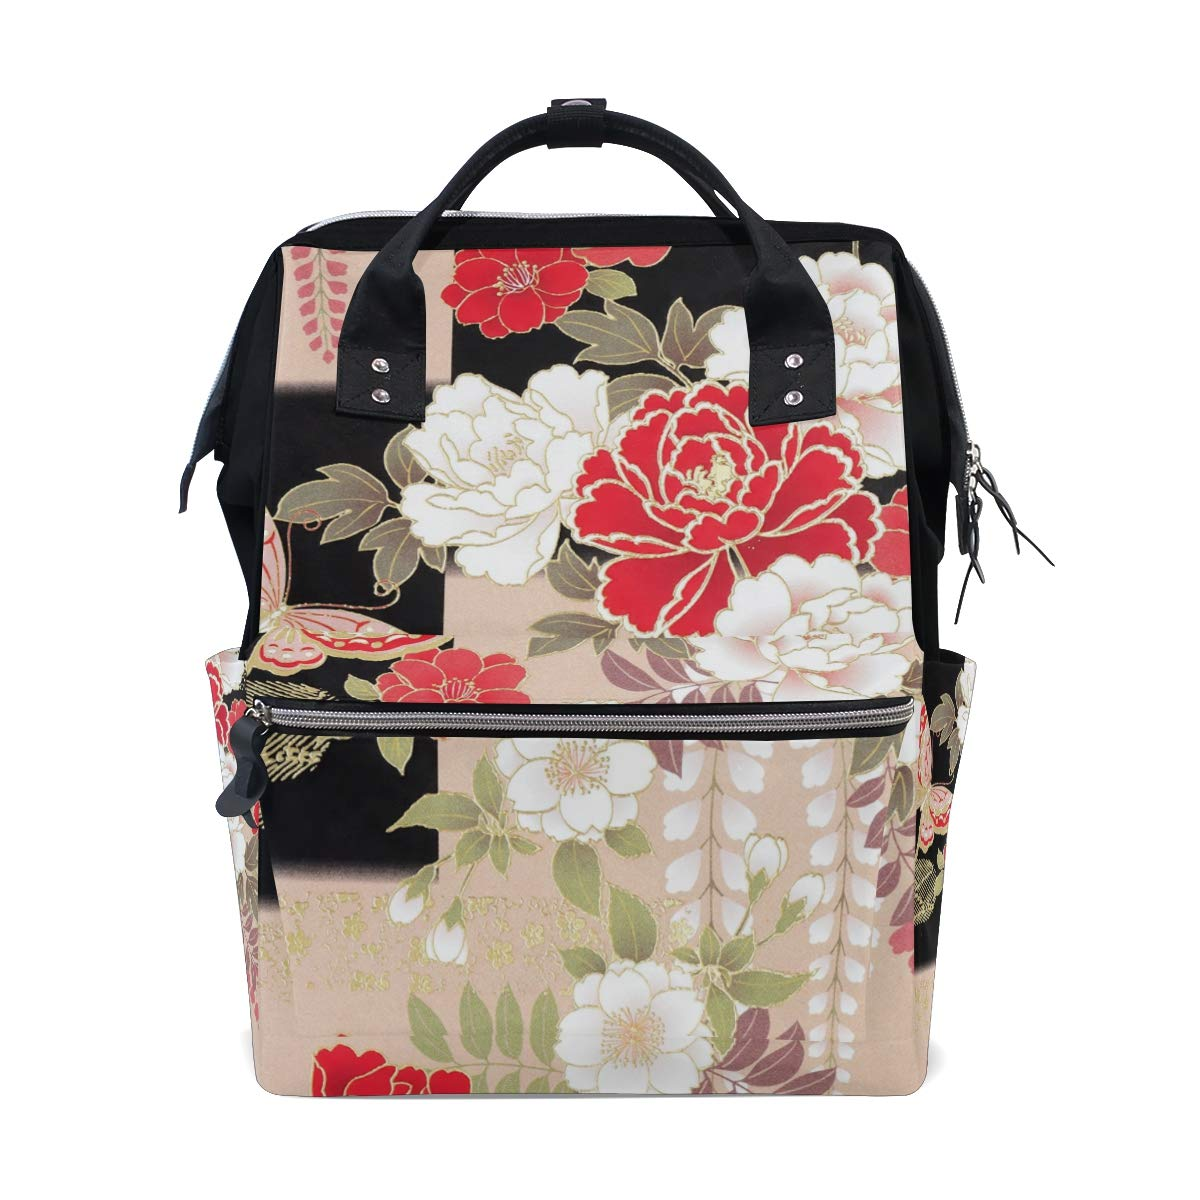 MERRYSUGAR Diaper Bag Backpack Travel Bag Large Multifunction Waterproof Japanese Floral Flower Butterfly Stylish and Durable Nappy Bag for Baby Care School Backpack